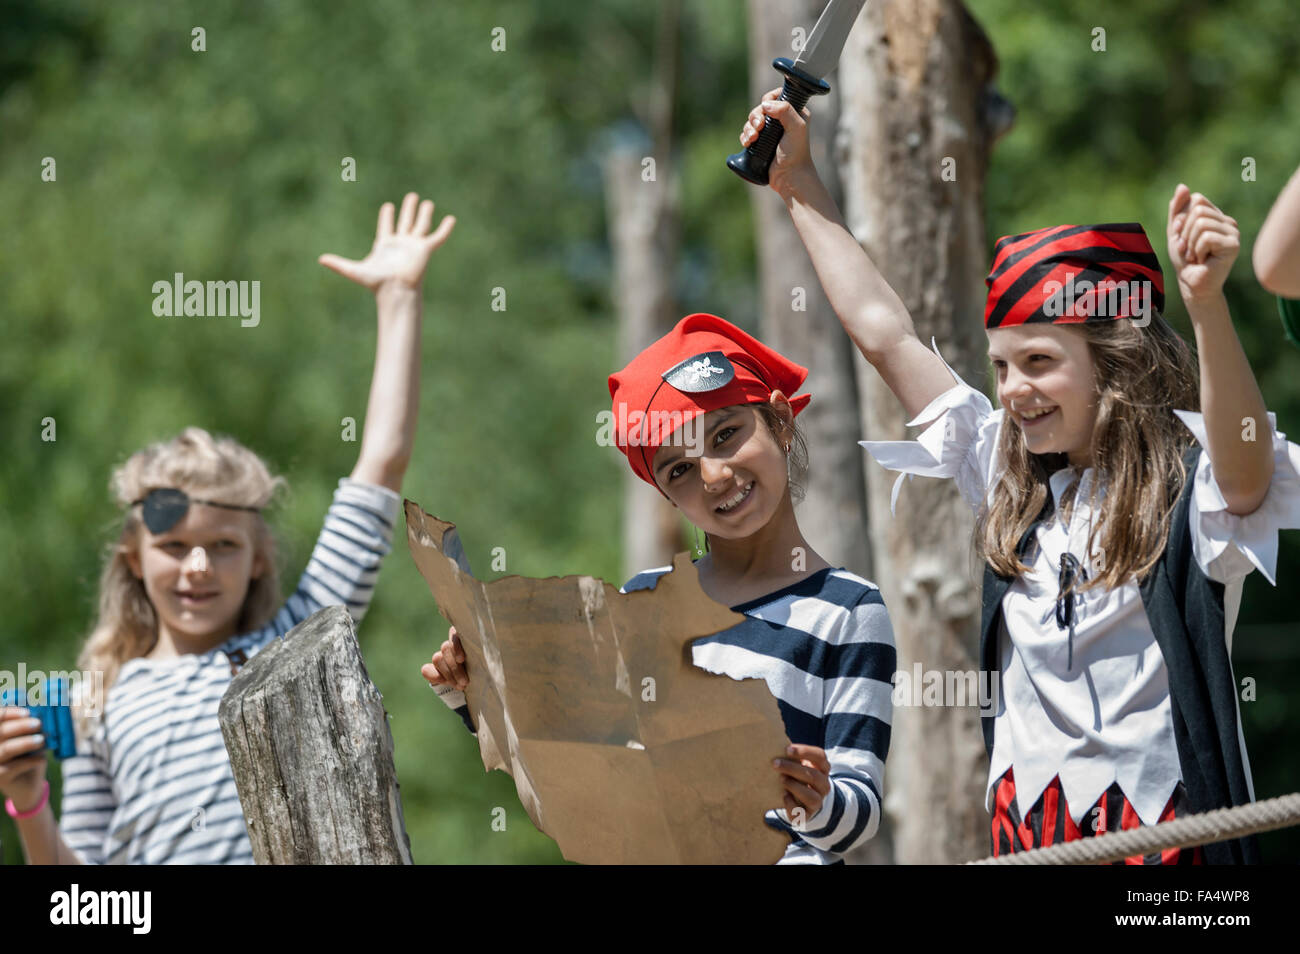 Girls playing on pirate ship in adventure playground, Bavaria, Germany - Stock Image